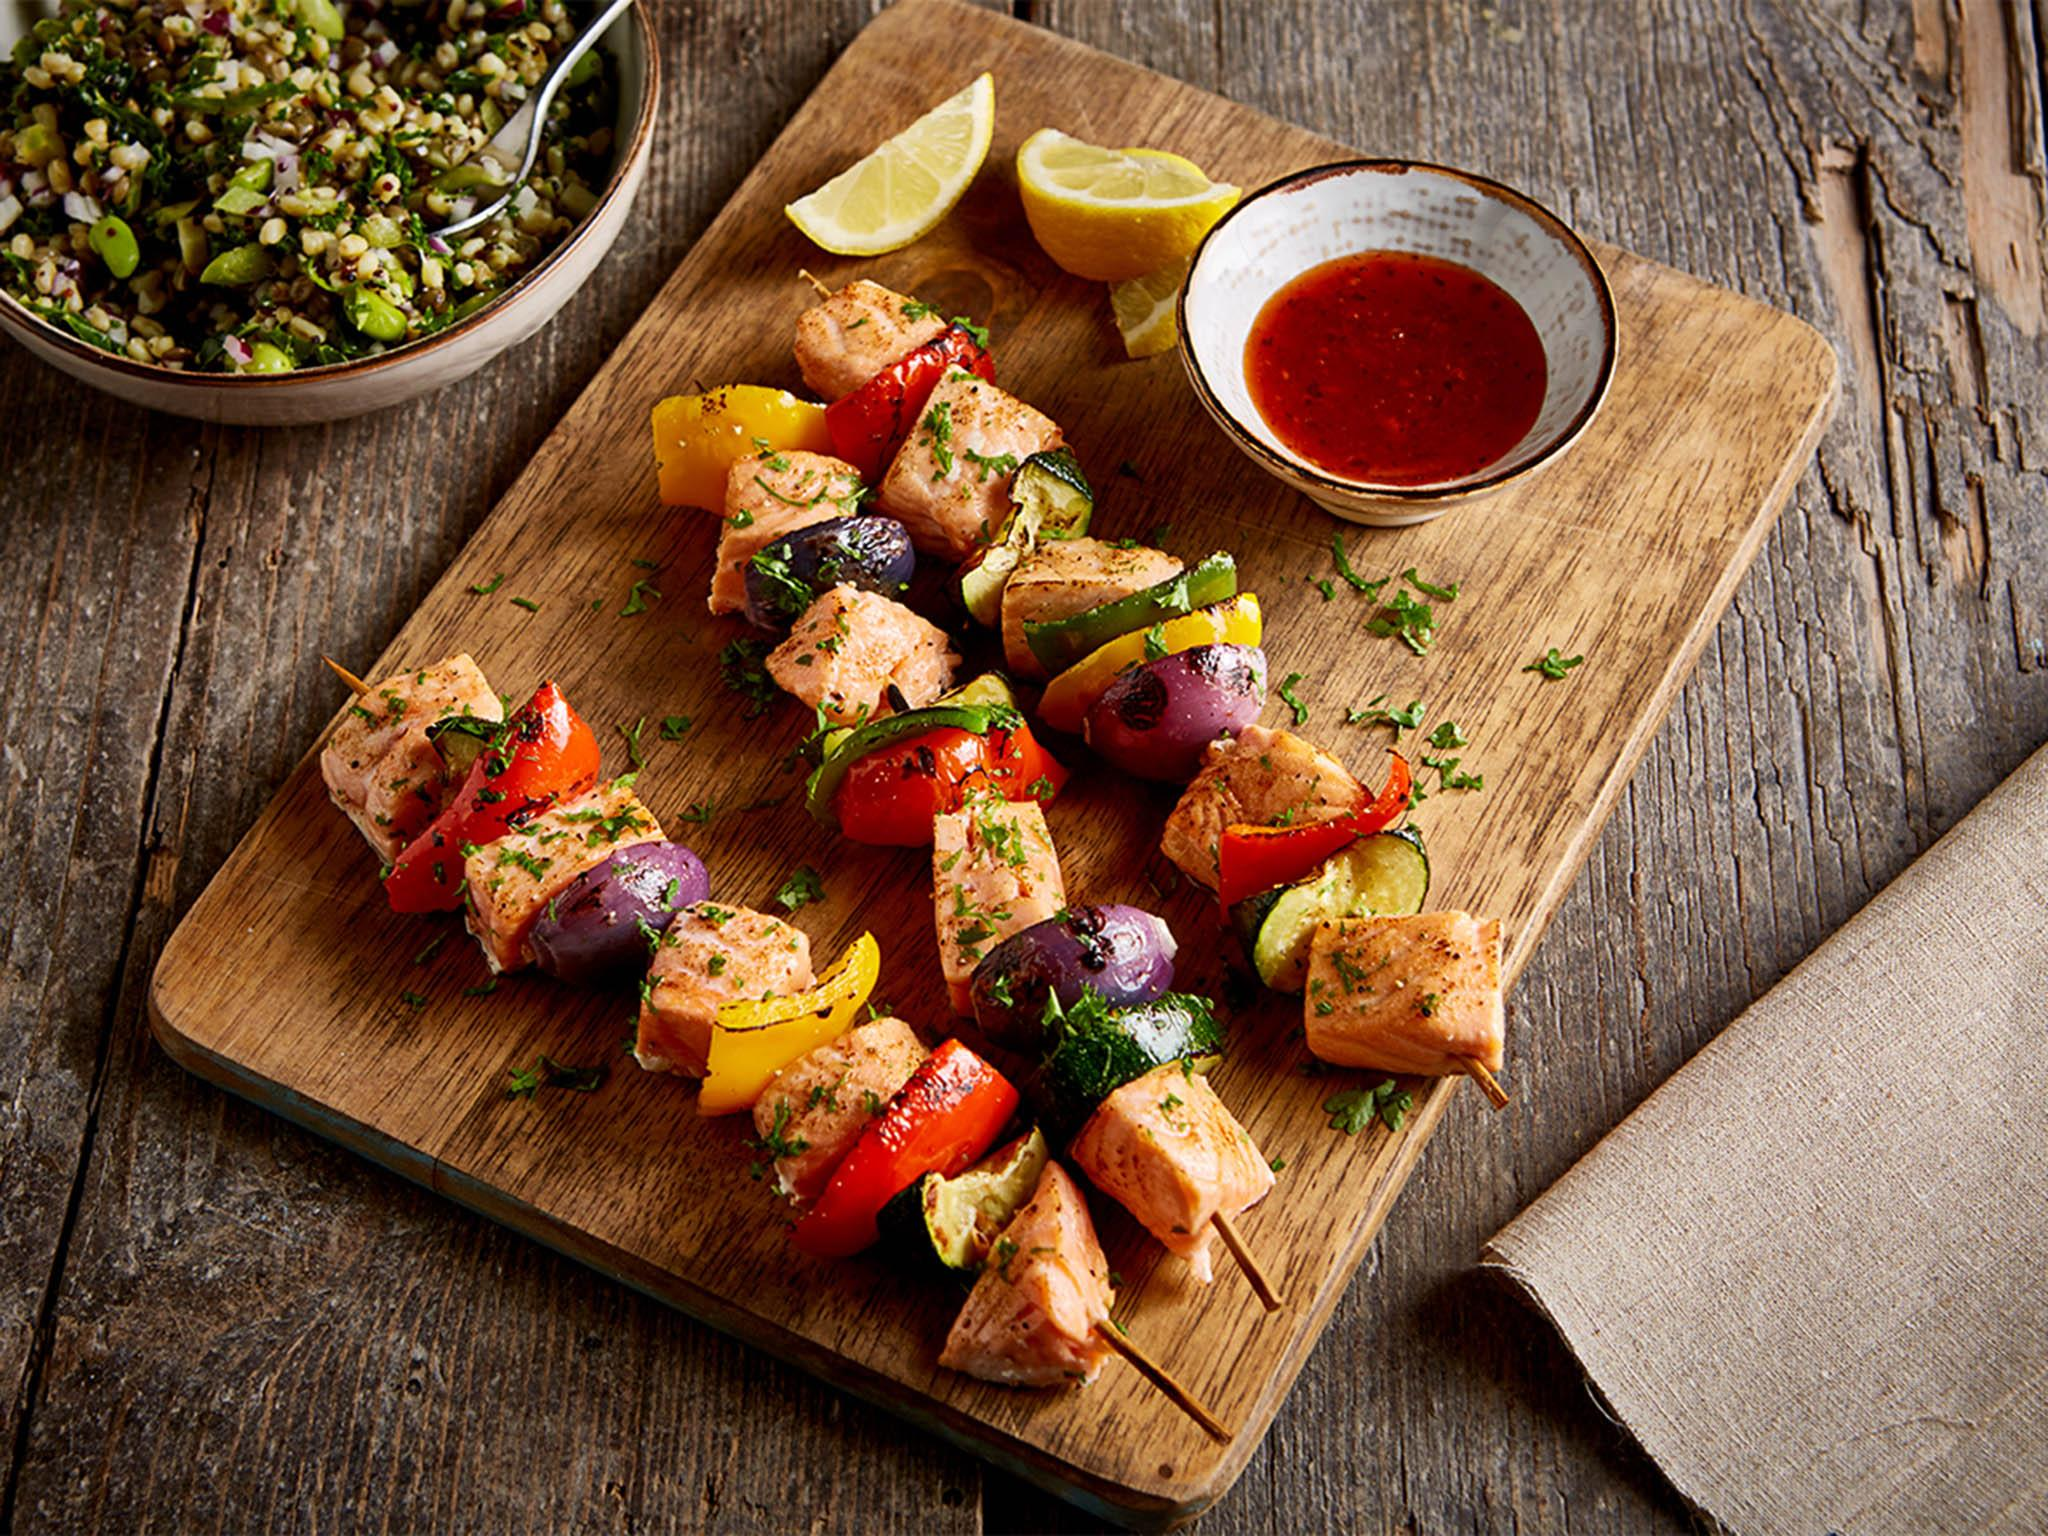 How to make salmon and vegetable kebabs with an ancient grain side salad 1